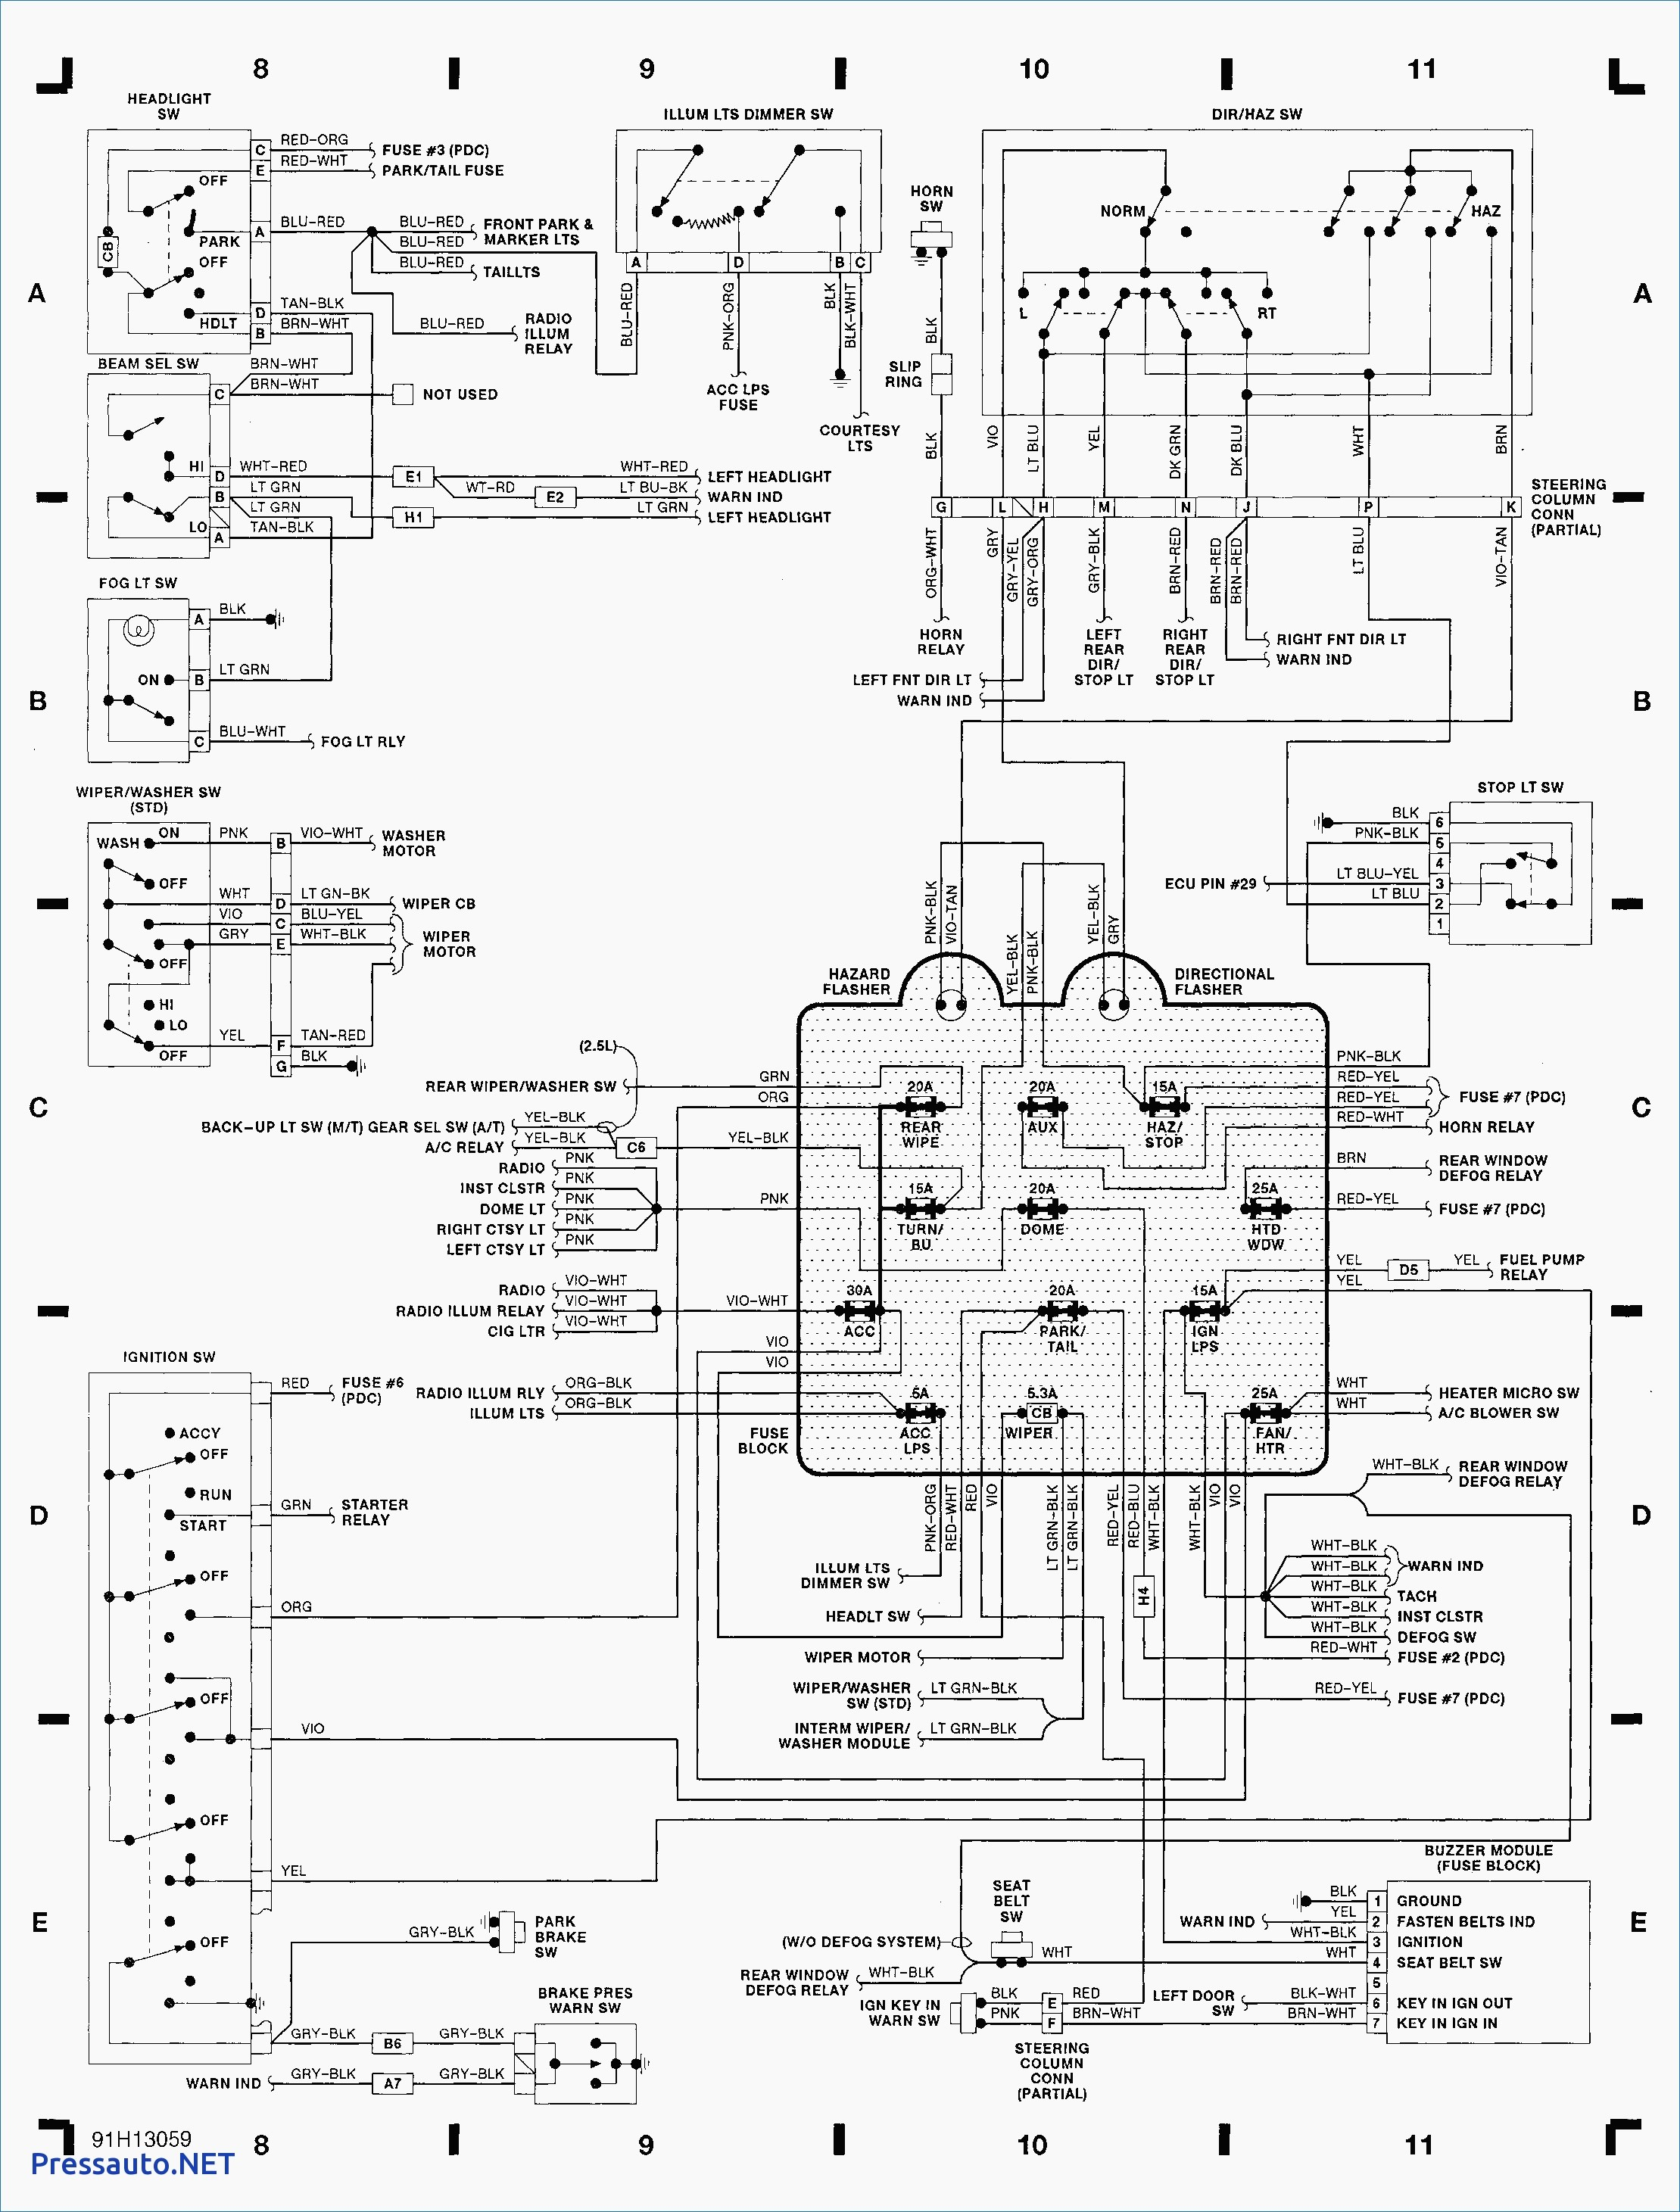 Jeep Yj Wiring Schematic - Wiring Diagram Server rock-answer -  rock-answer.ristoranteitredenari.it | Wrangler Yj Fuse Diagram |  | Ristorante I Tre Denari Manerbio